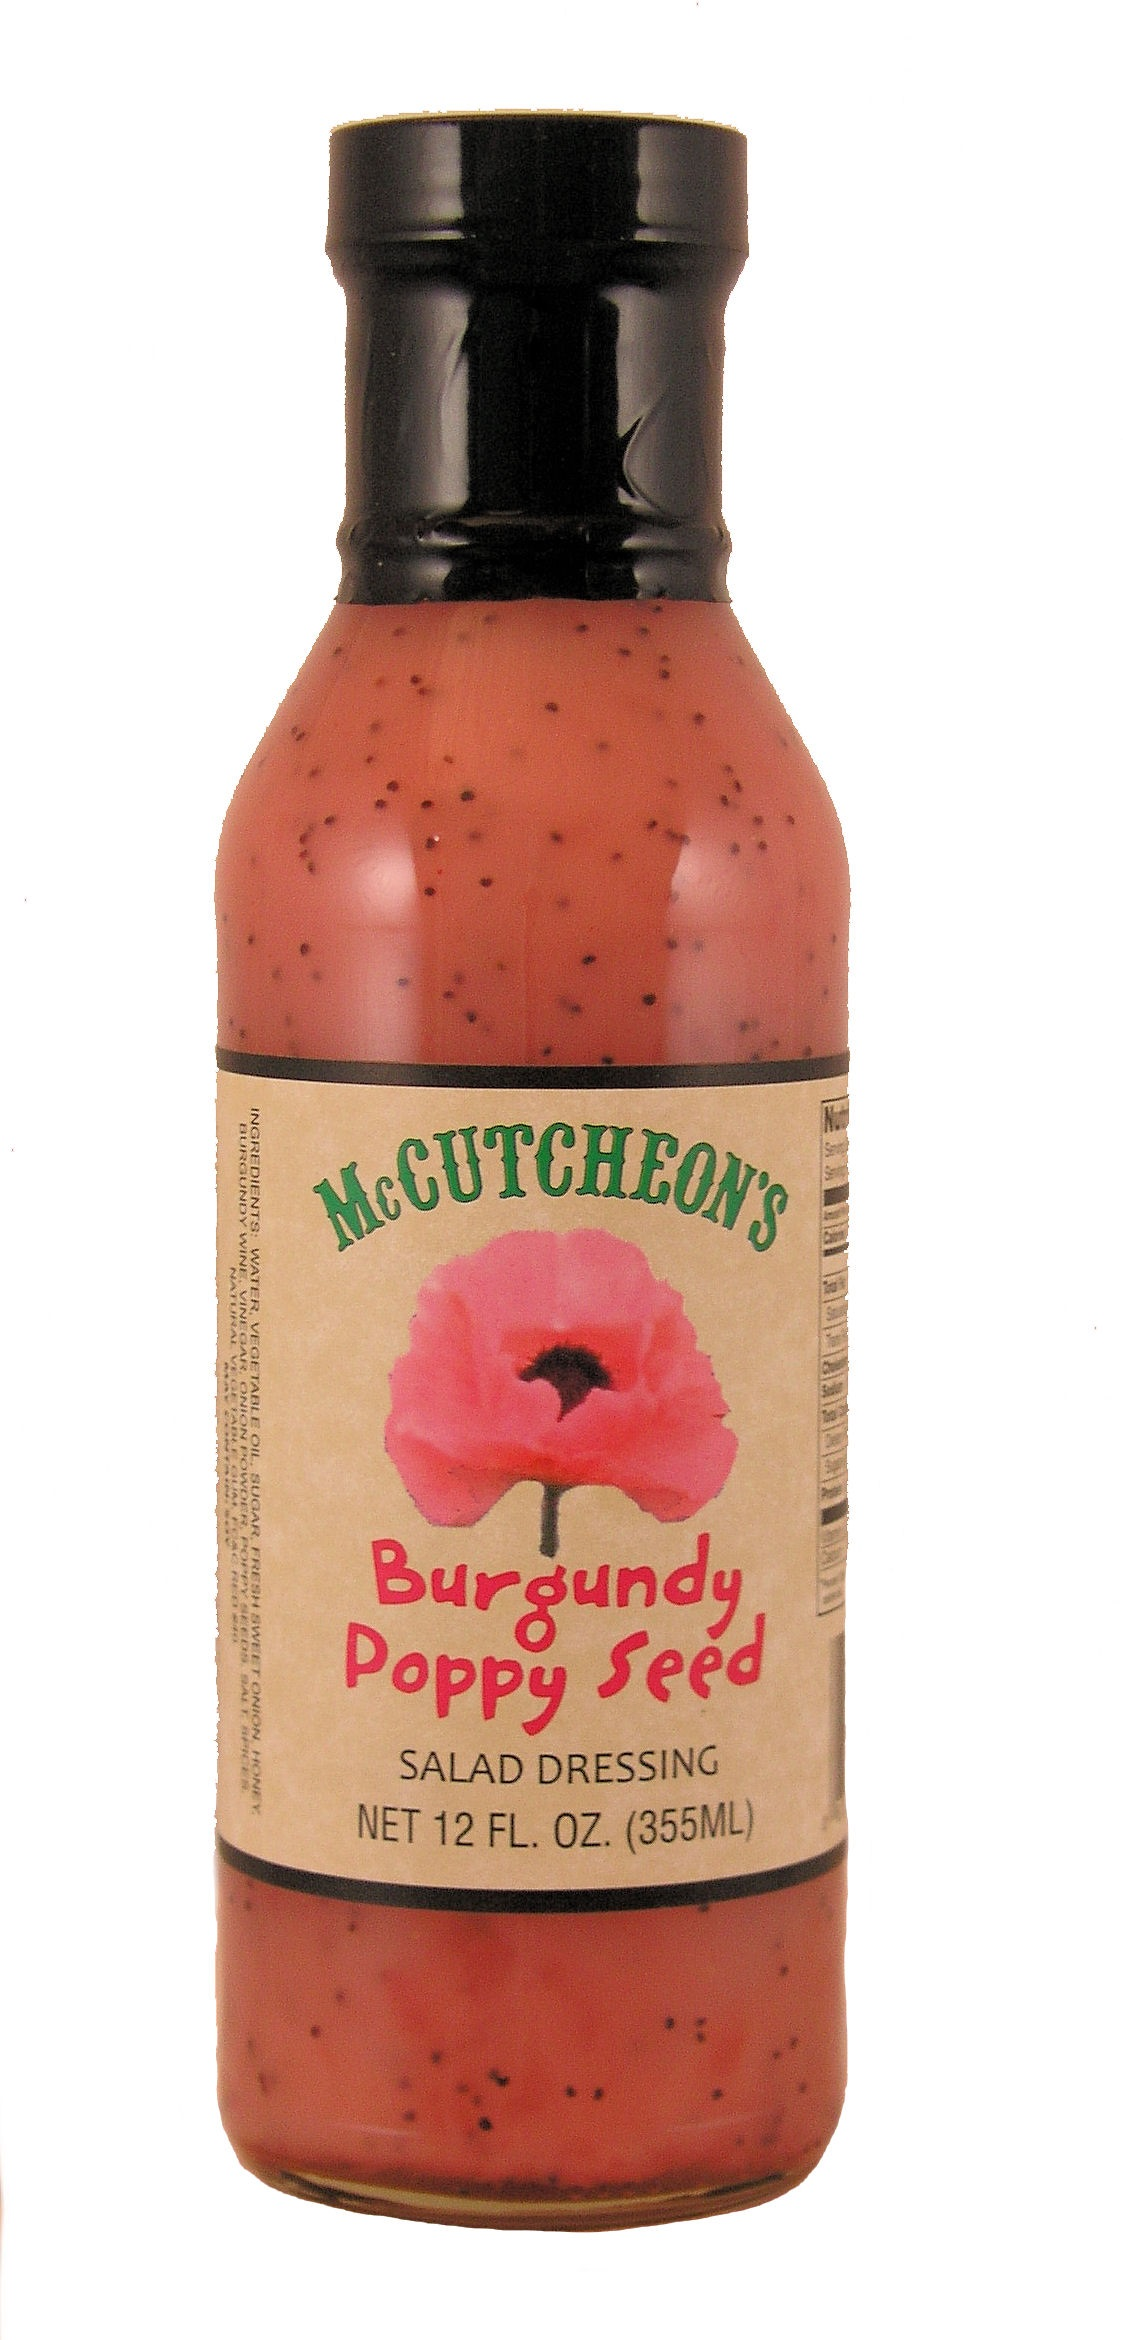 Burgandy Poppyseed Dressing 12/12 oz